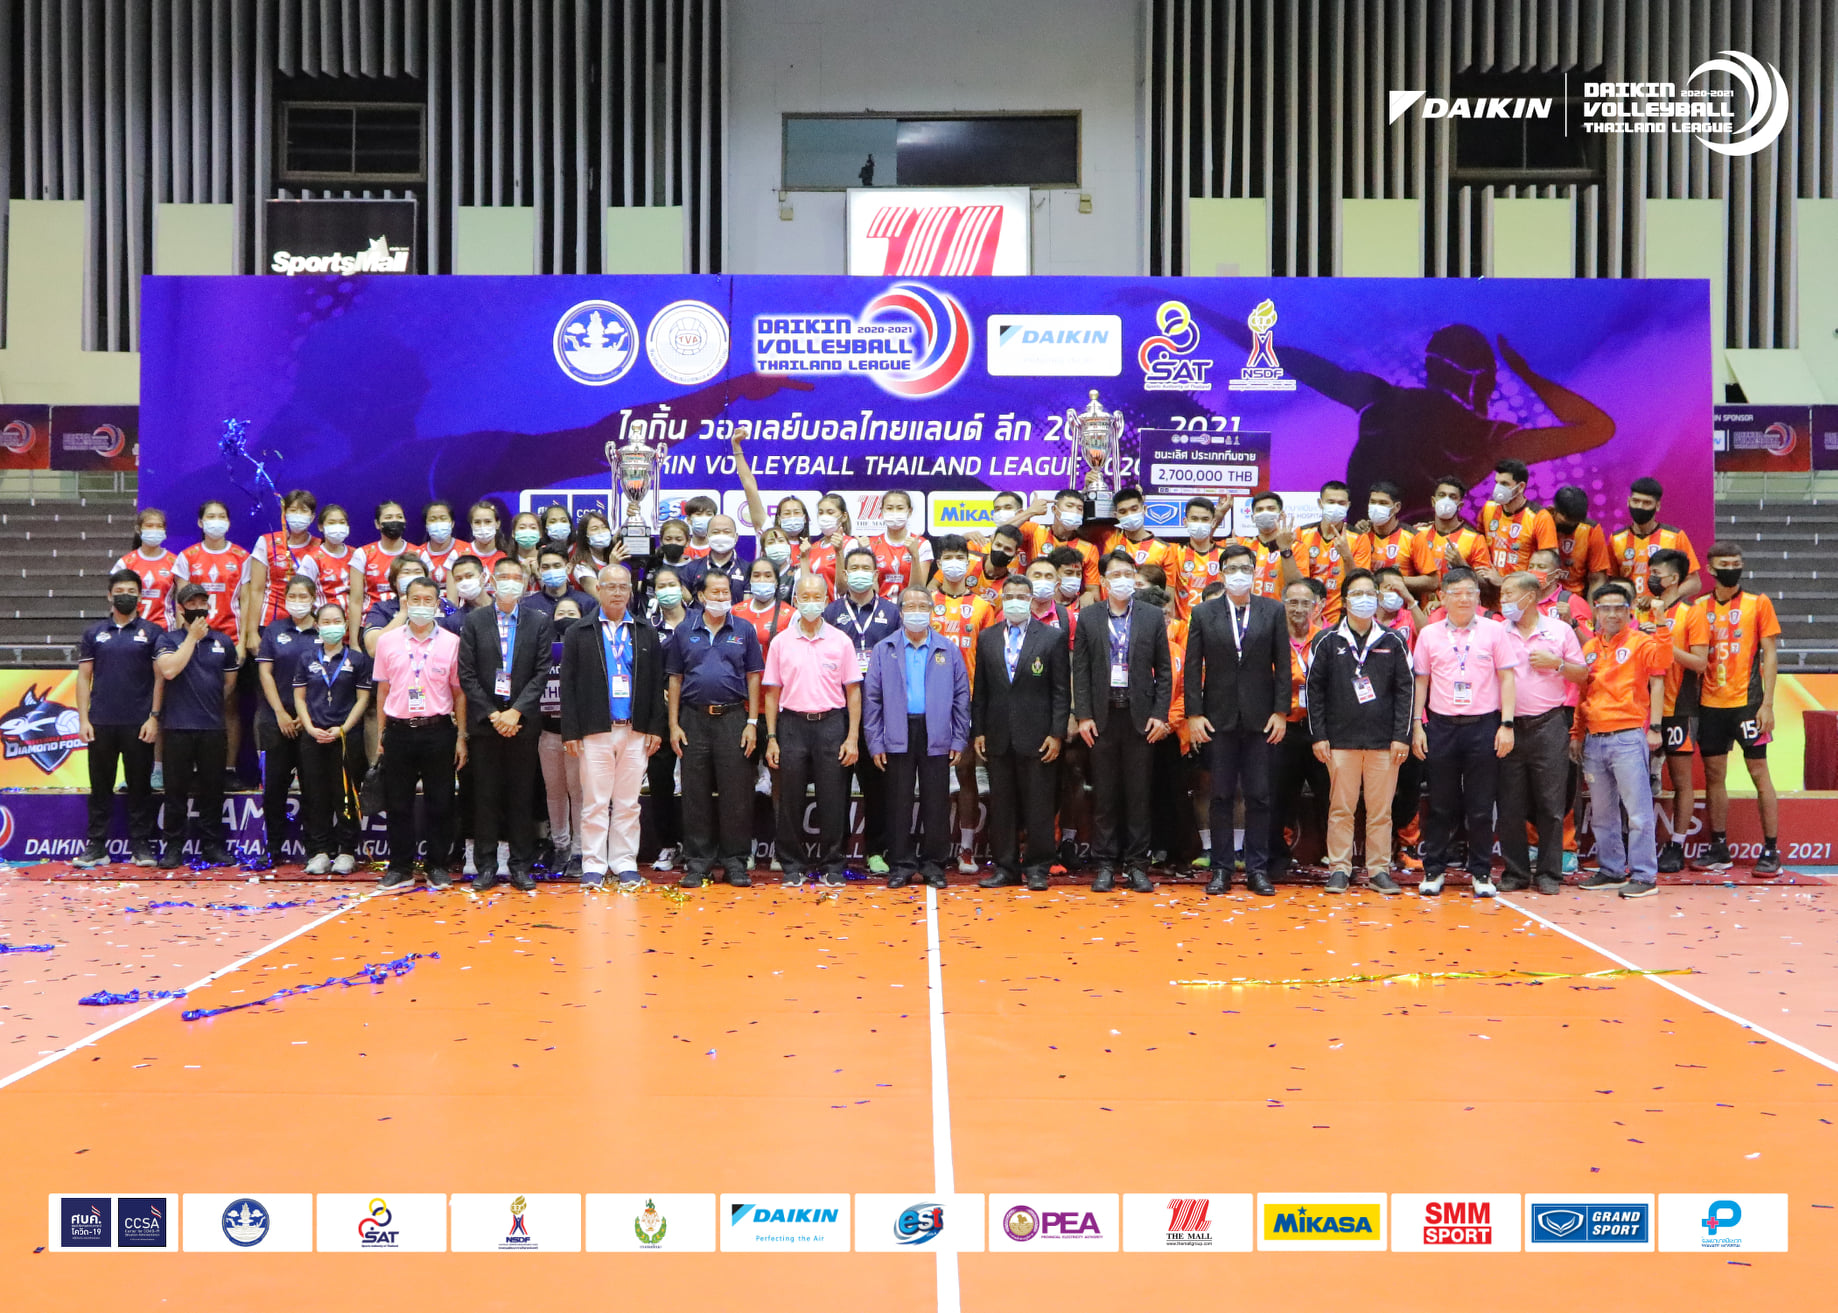 NAKHON RATCHASIMA RETAIN MEN'S TITLE, DIAMOND FOOD CAPTURE MAIDEN CROWN IN VOLLEYBALL THAILAND LEAGUE 2020-2021